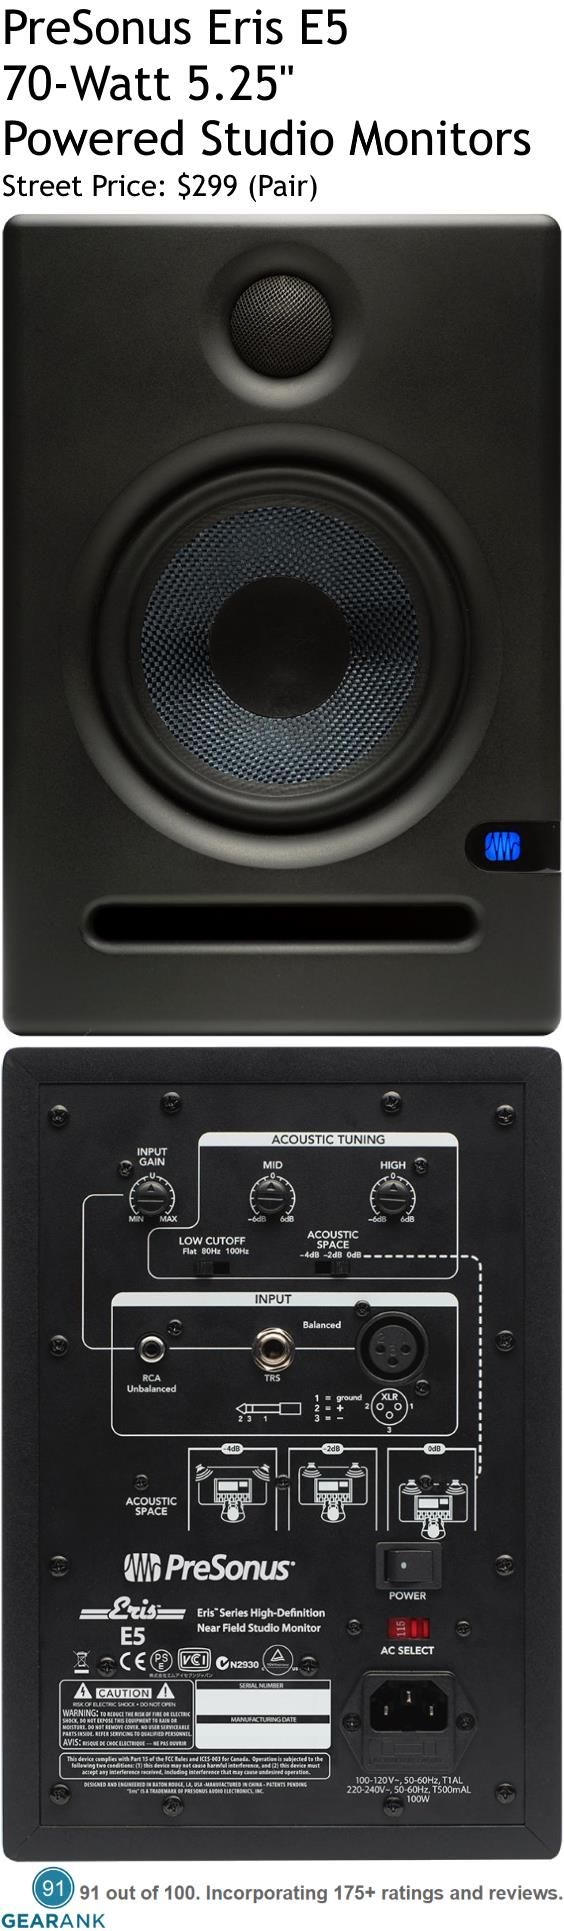 "PreSonus Eris E5 70W 5.25"" Powered Studio Monitors. Features: 5"" LF Kevlar driver 1"" HF Silk Dome tweeter - Bi Amplification: LF 45W 